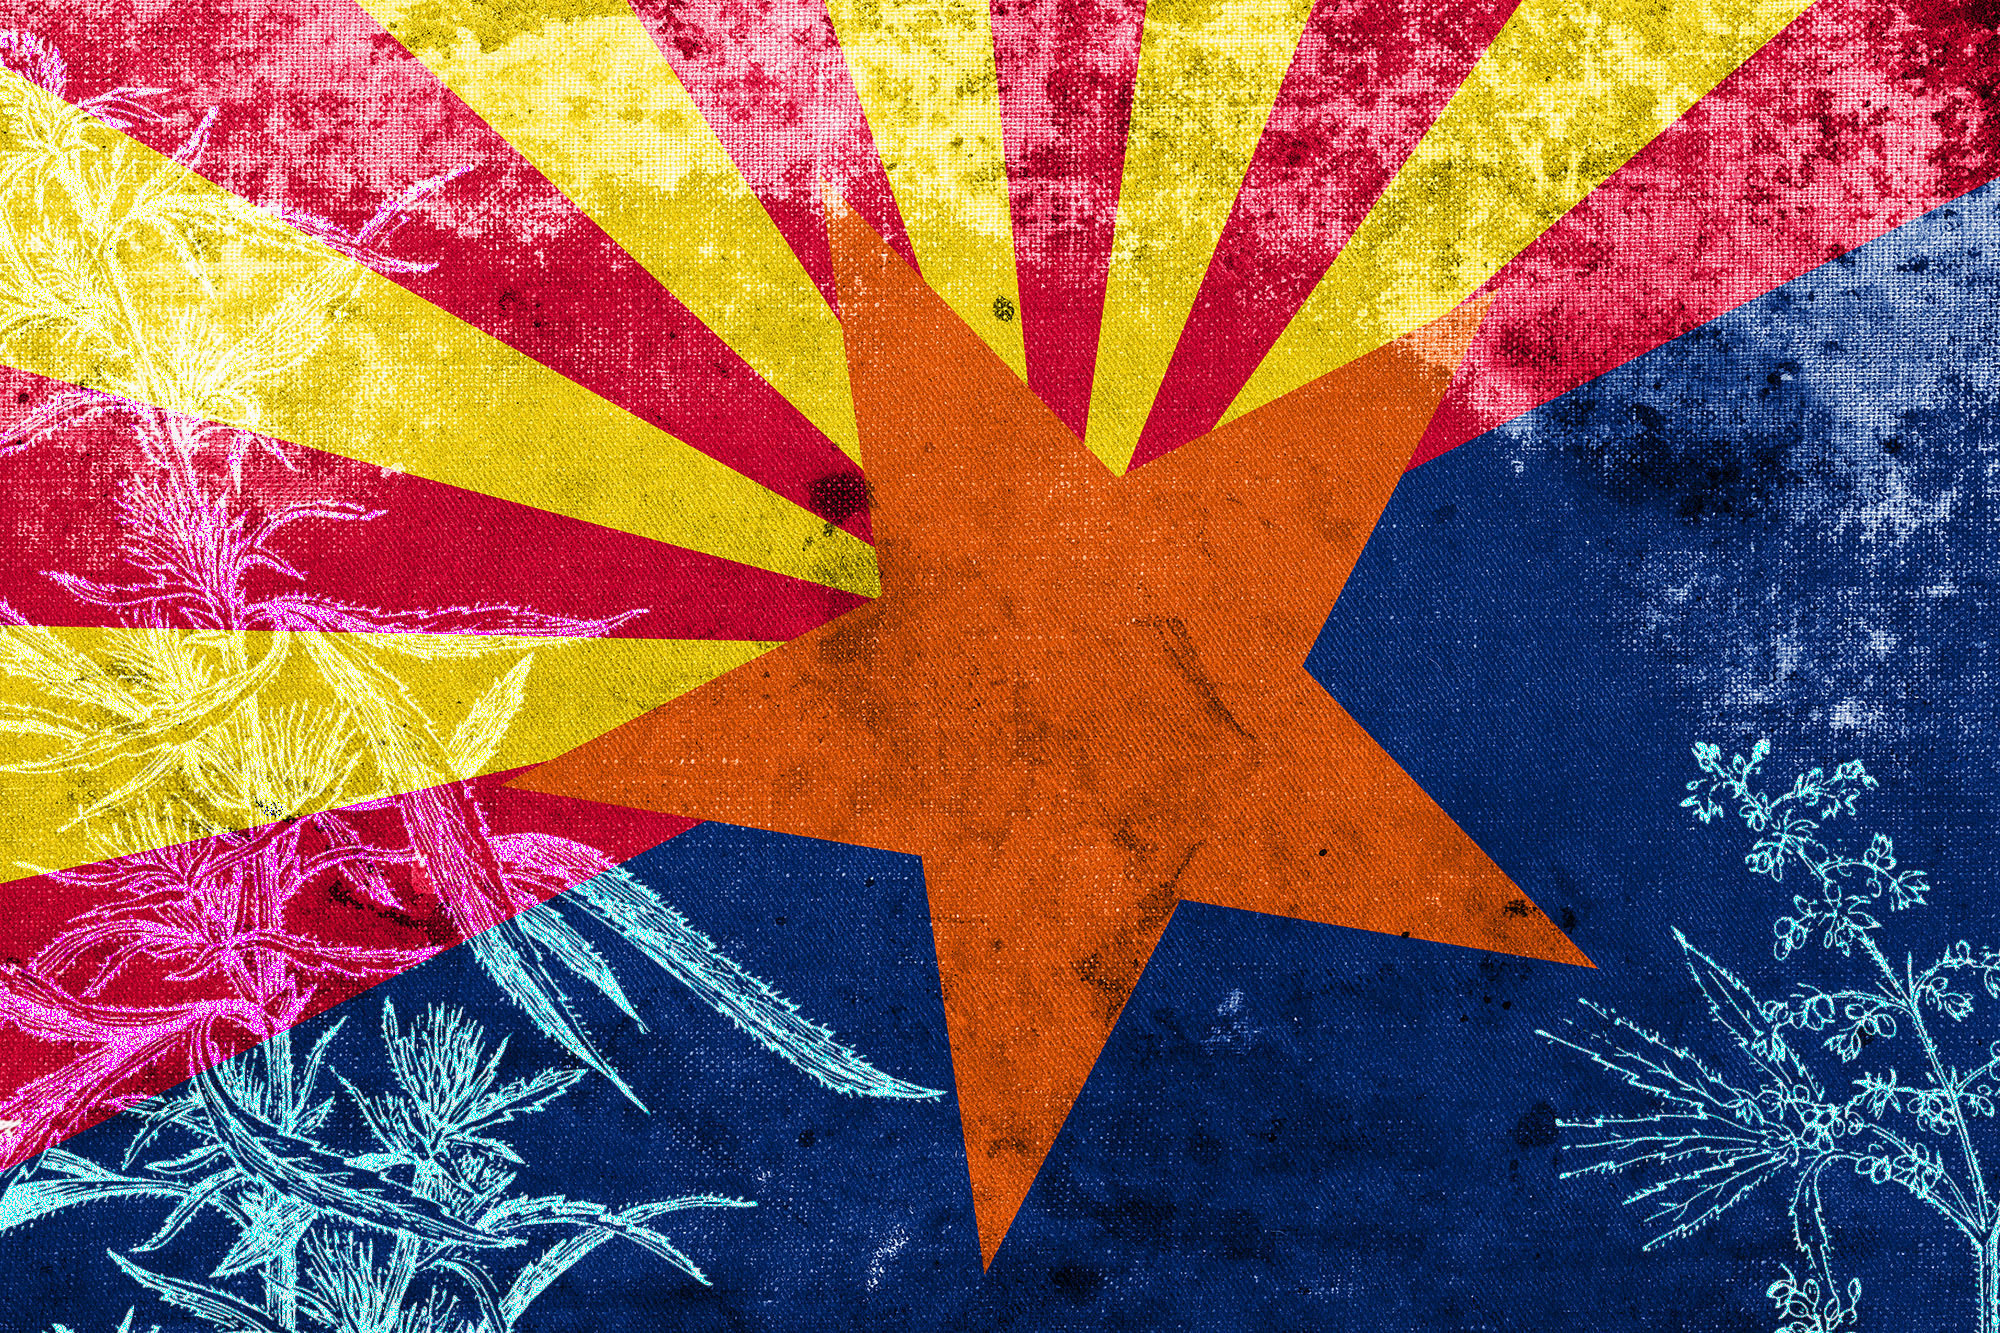 Arizona To Issue Additional Medical Marijuana Dispensary Licenses